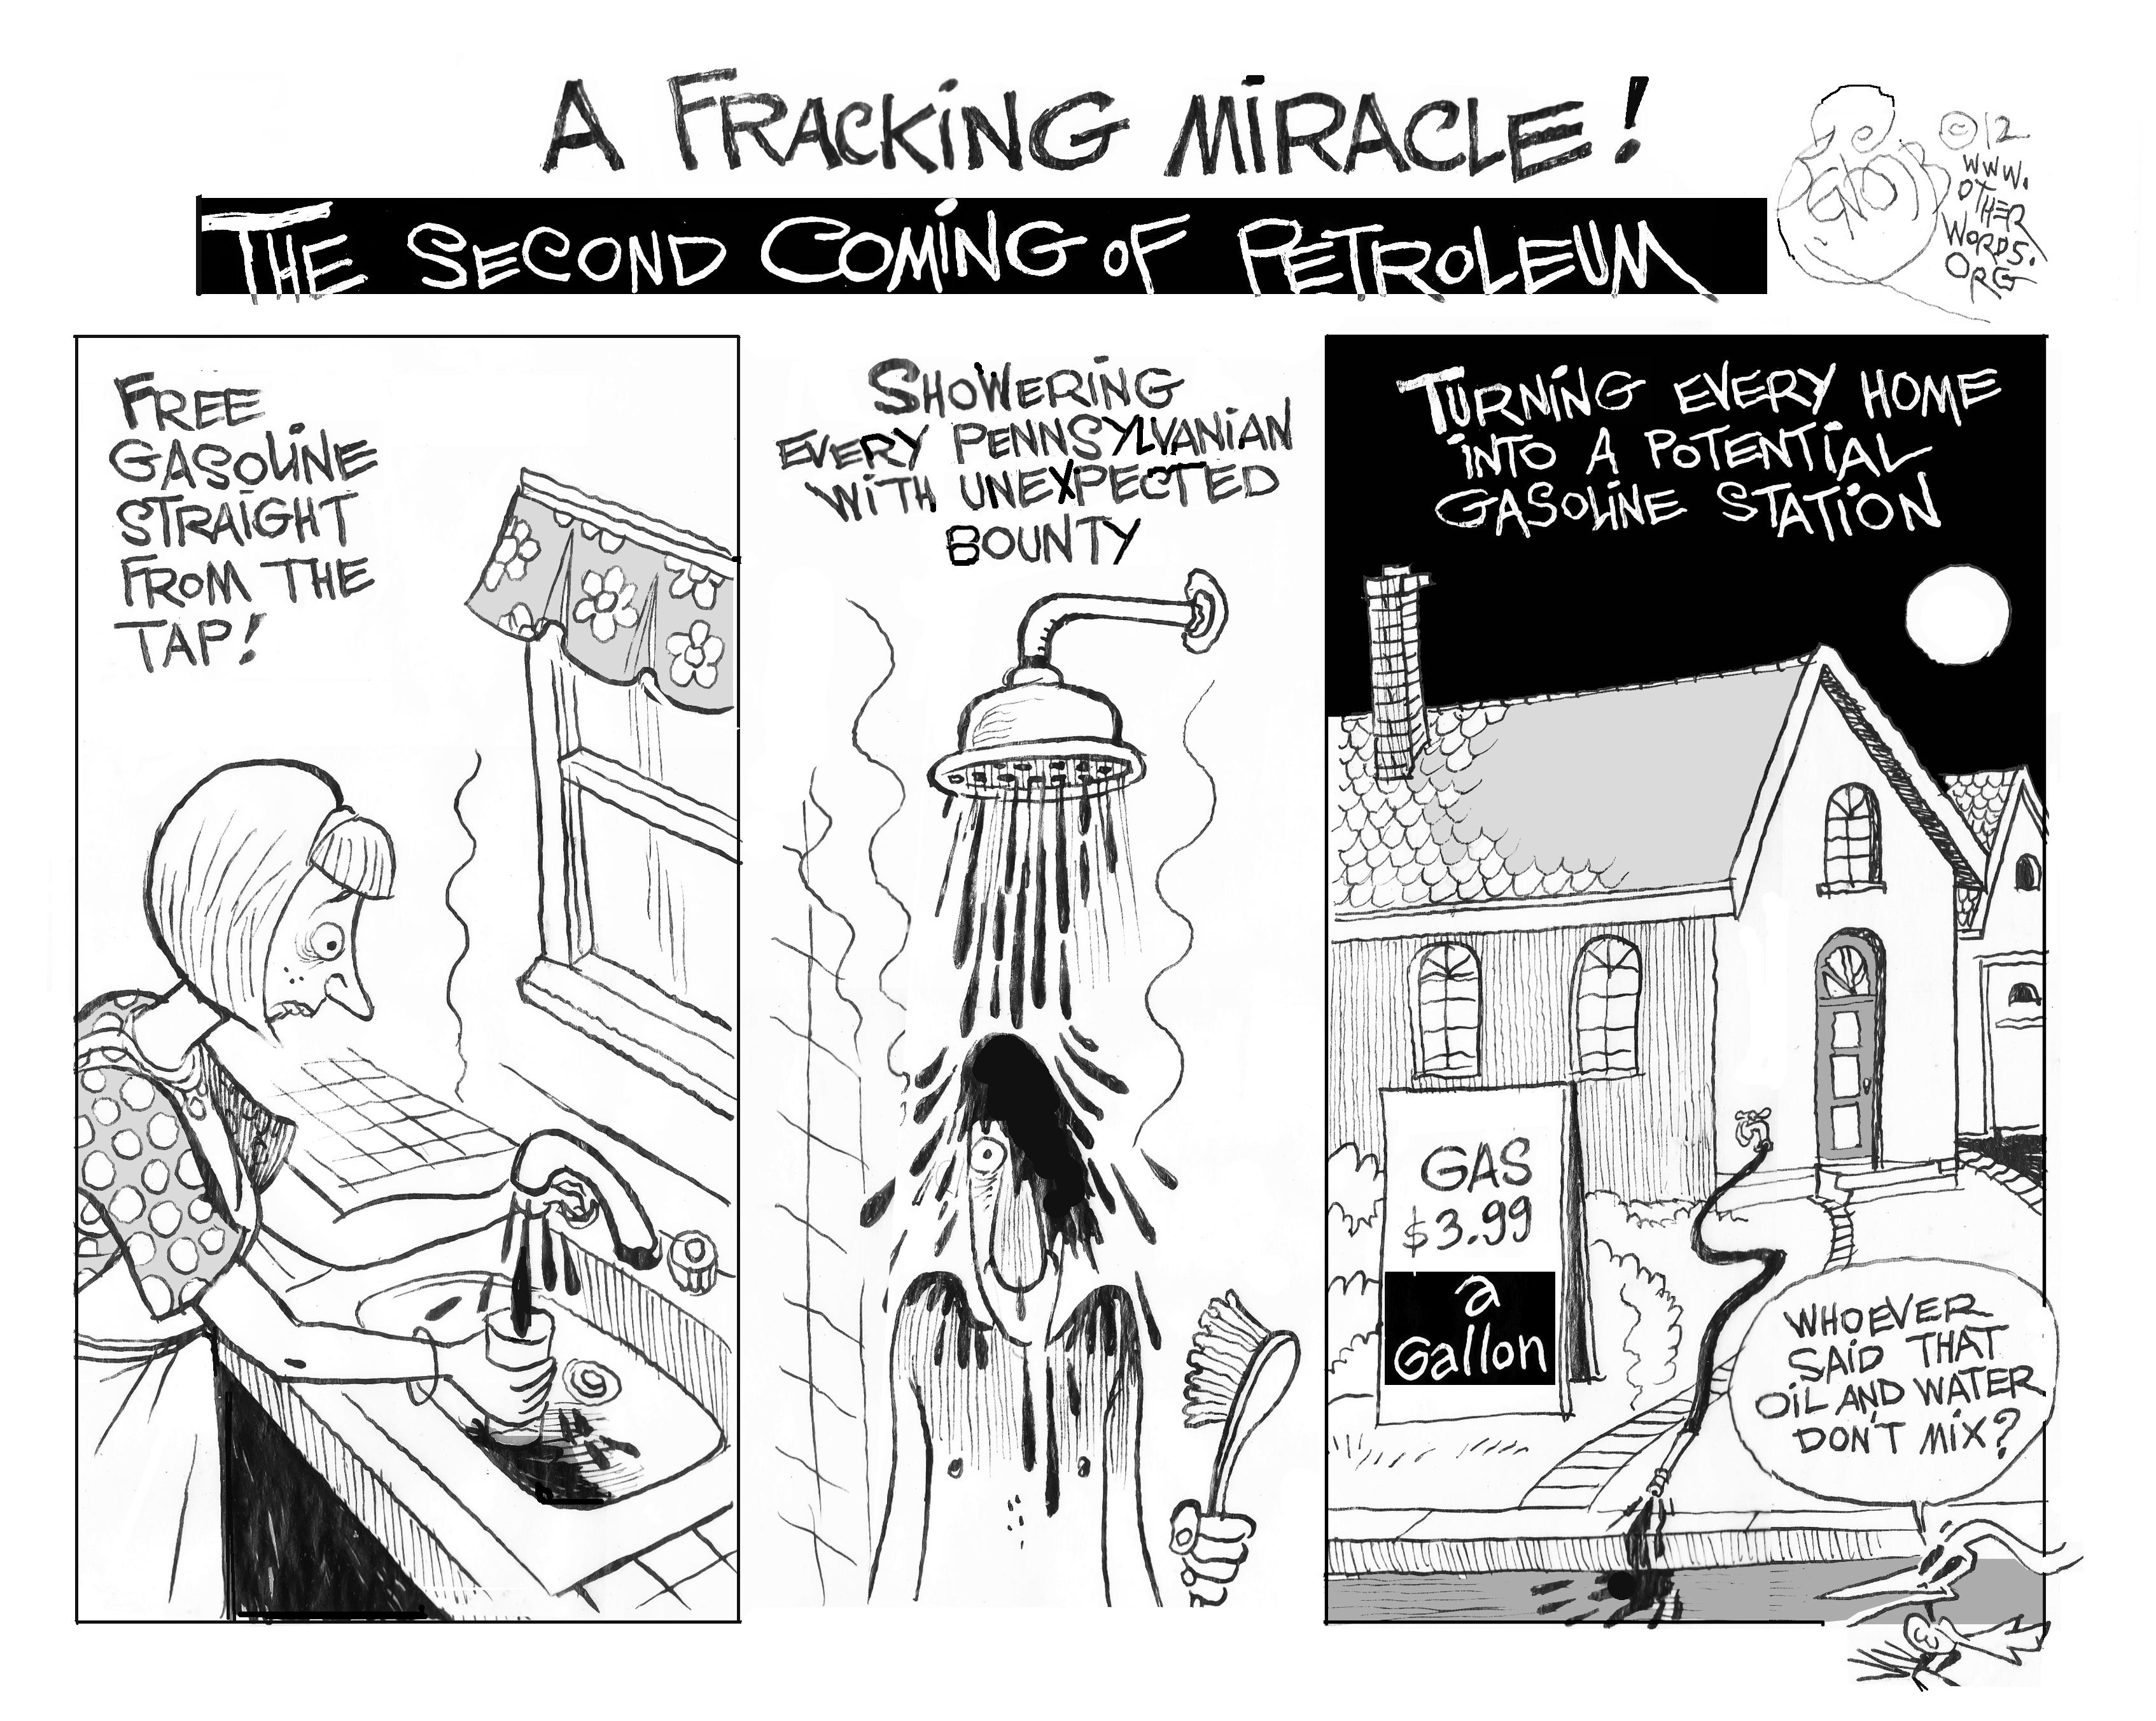 A Fracking Miracle